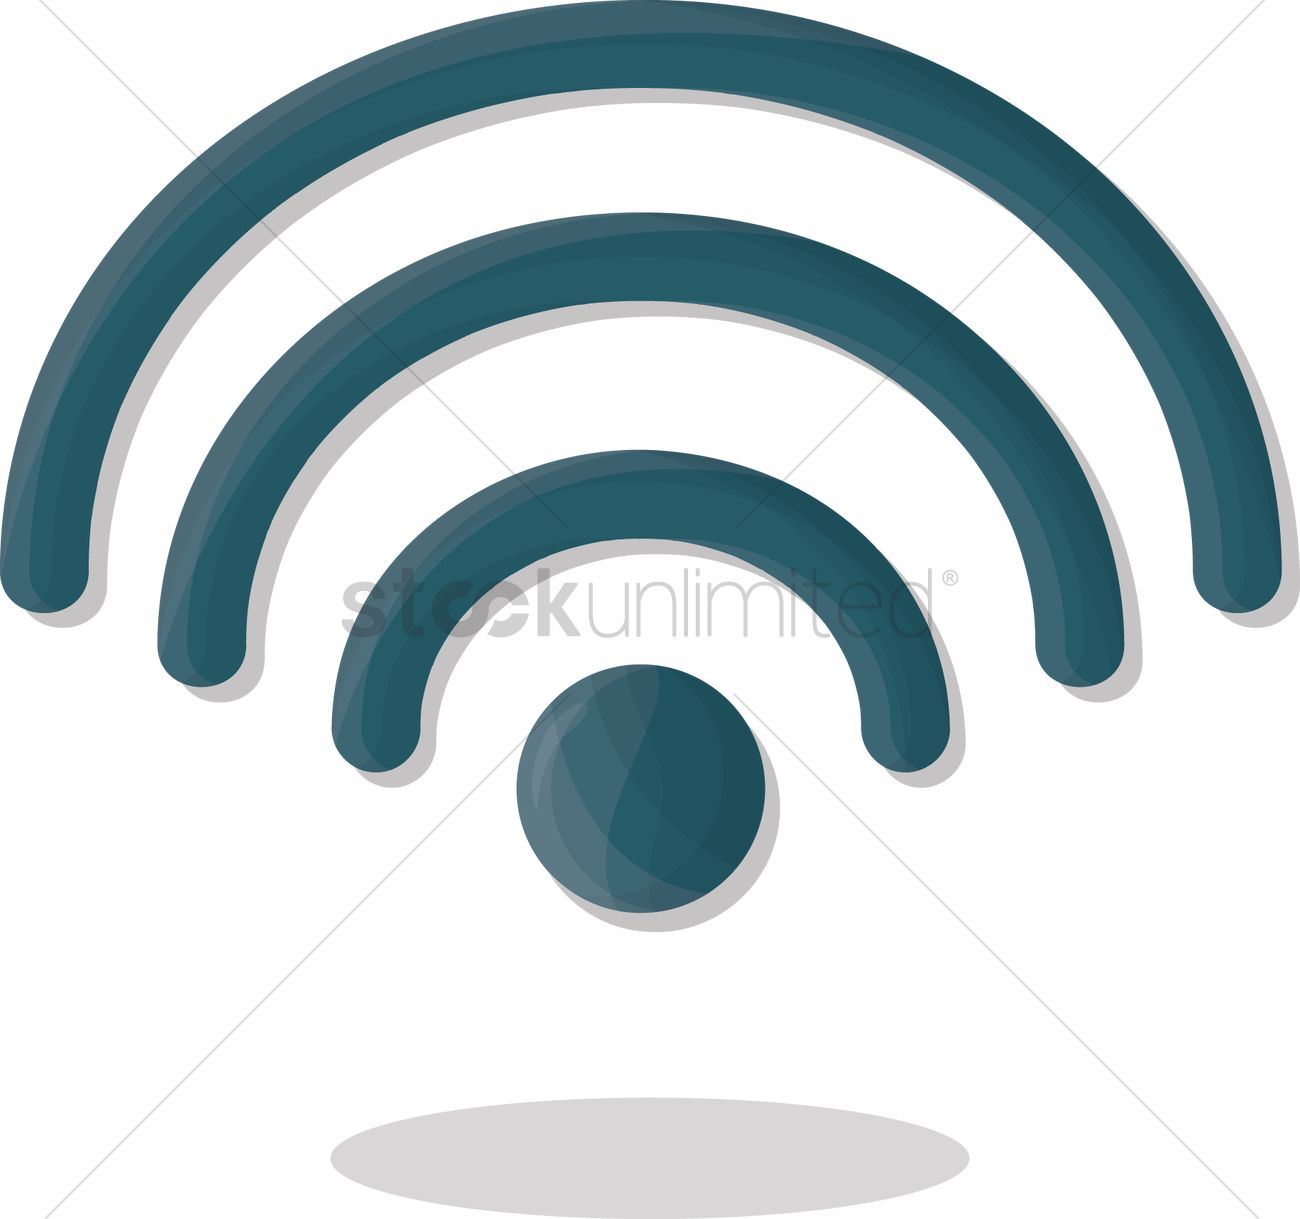 Wireless Network Symbol Vector Image 1252408 Stockunlimited